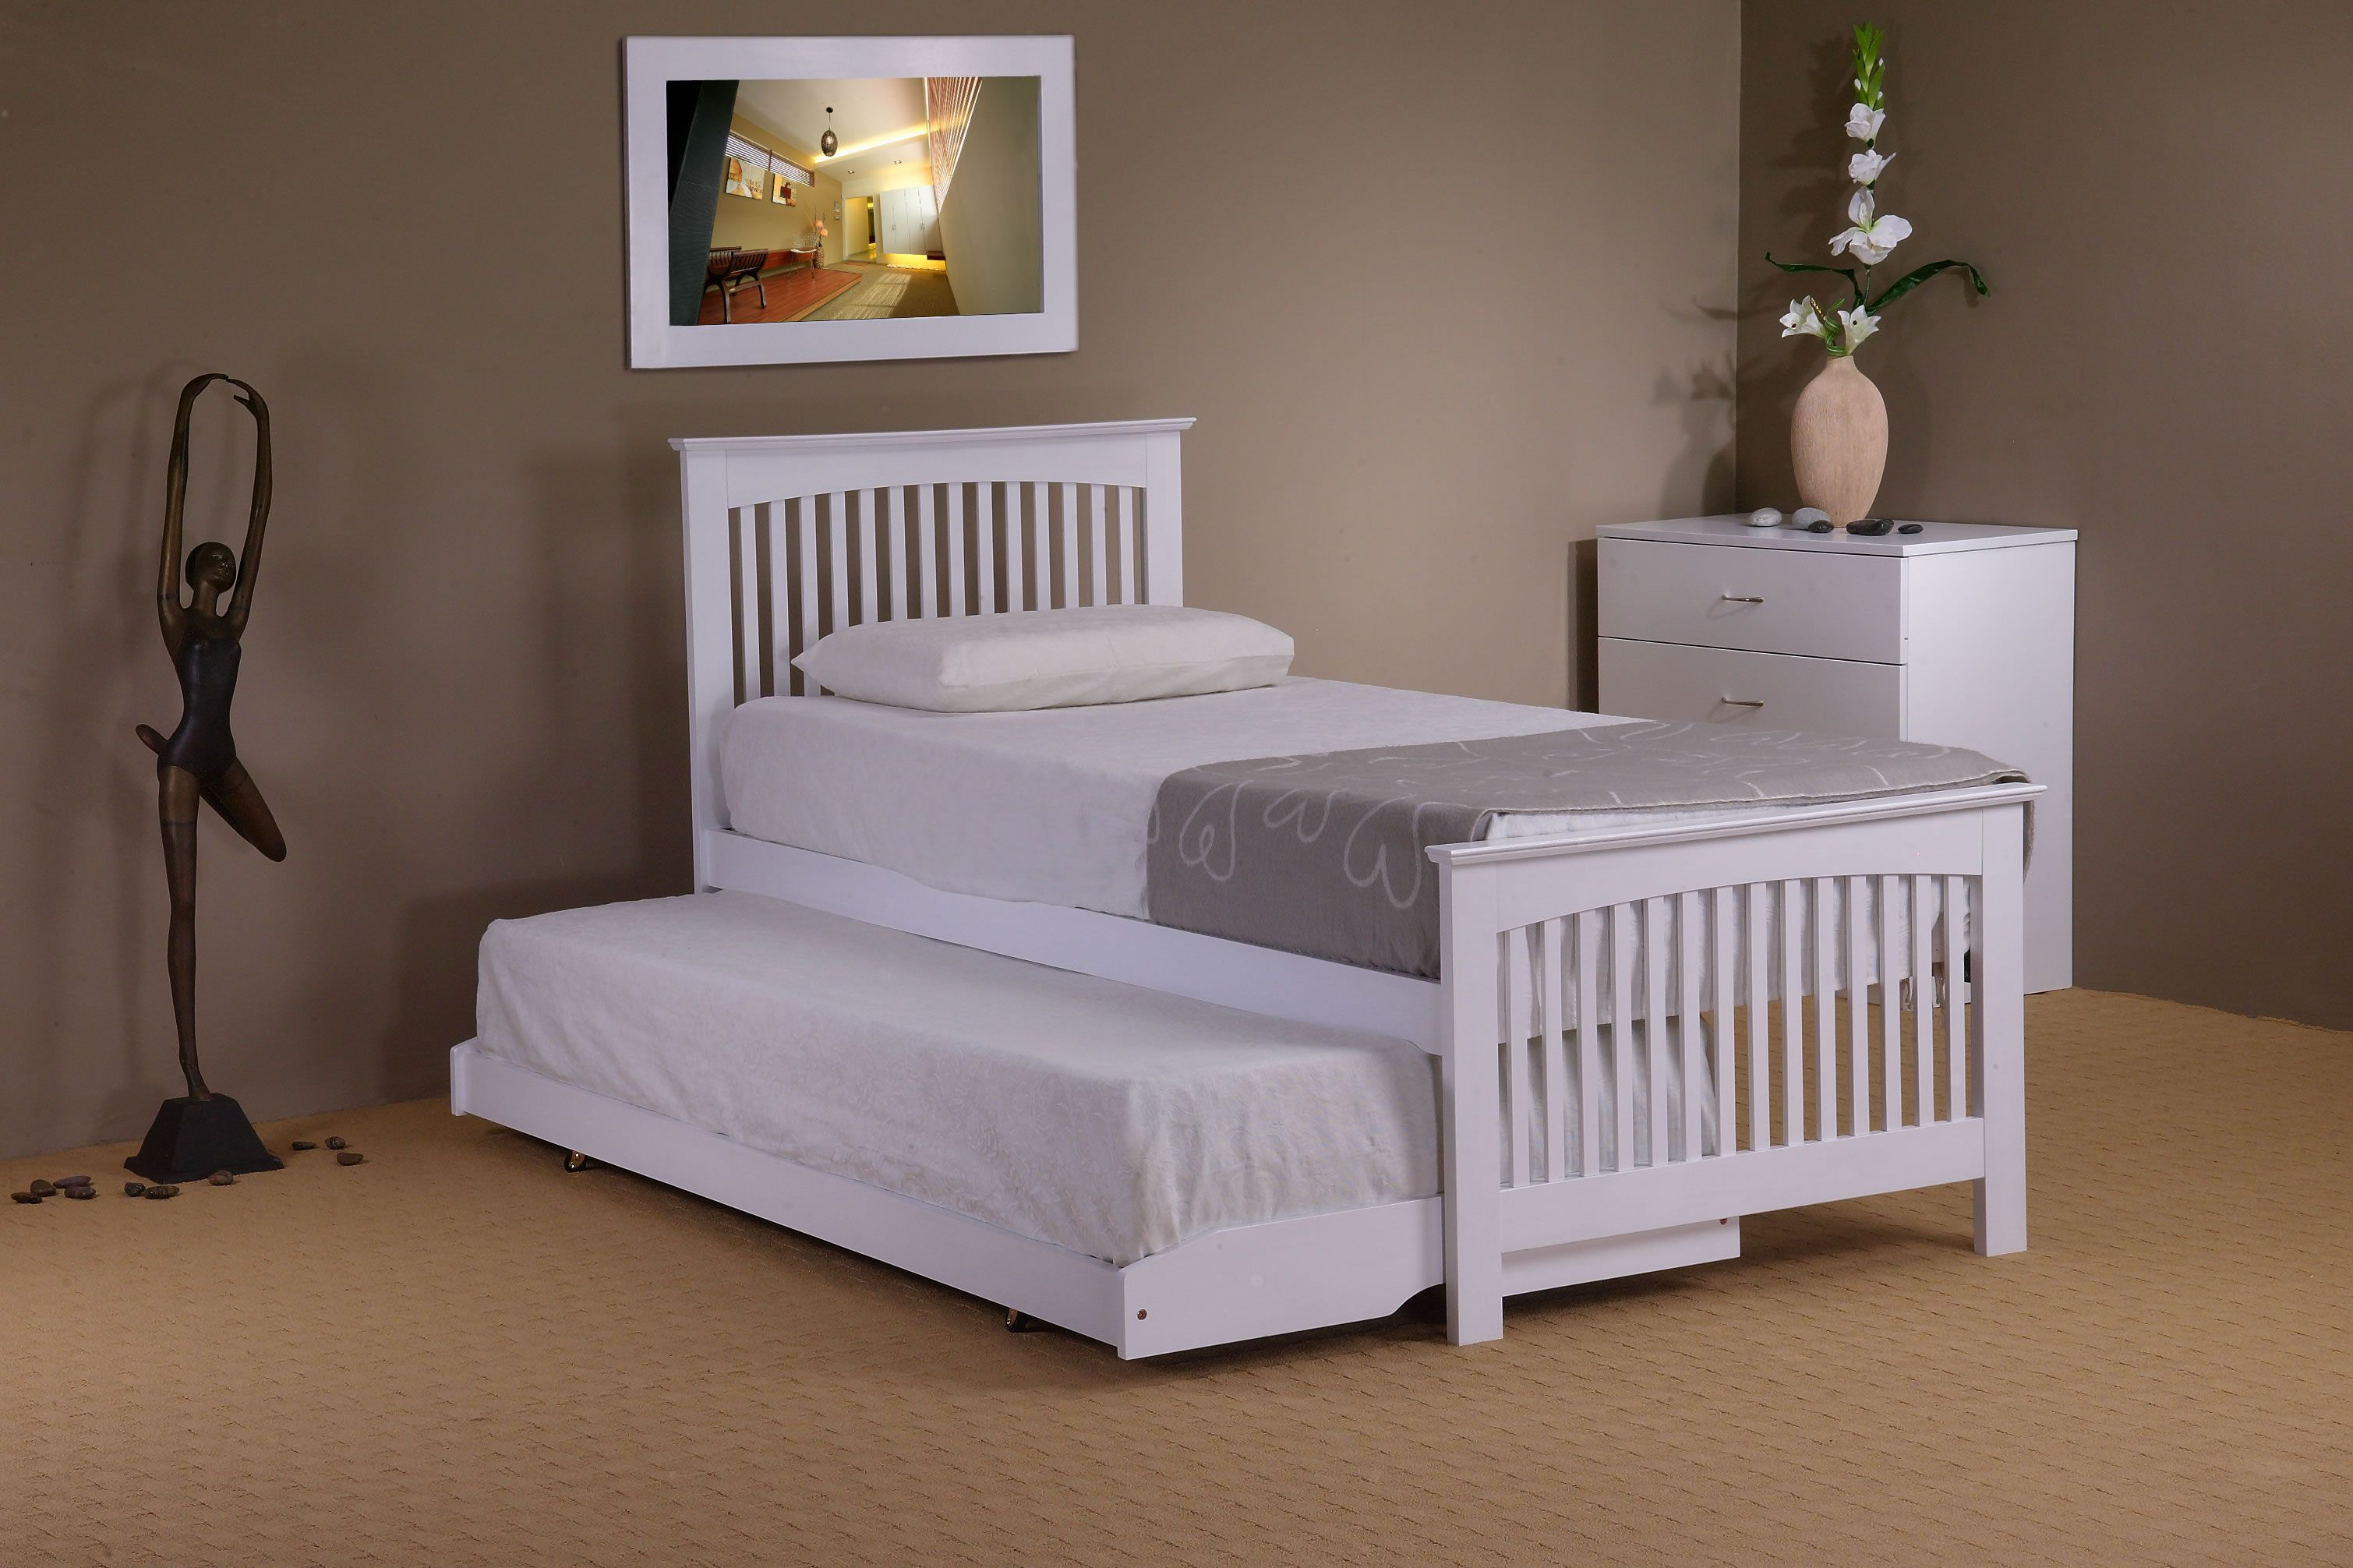 Delano guest bed in white